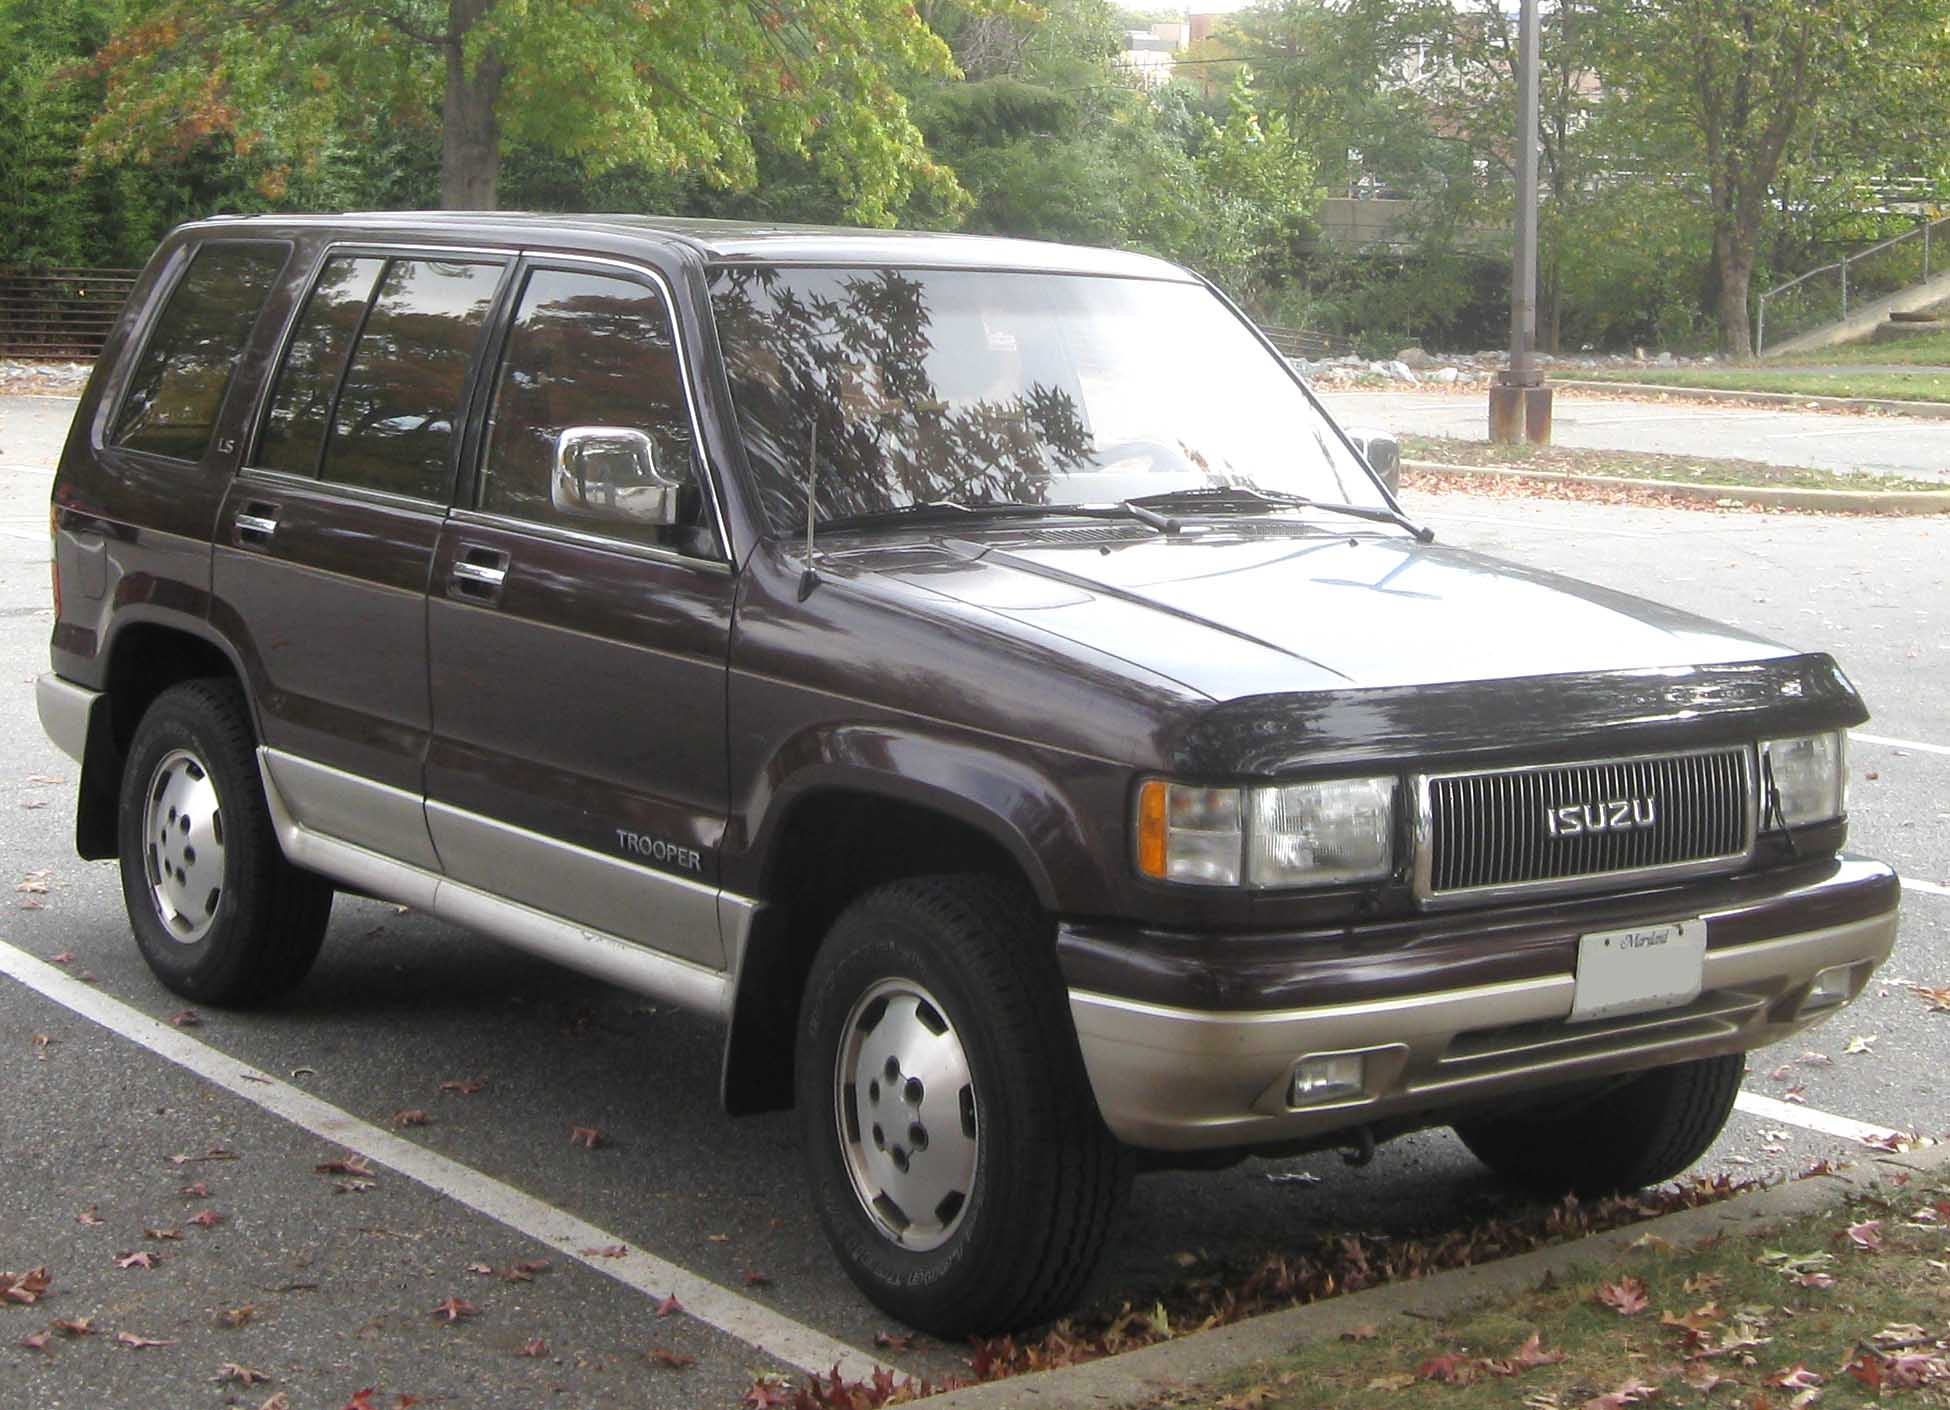 1992 isuzu trooper information and photos zombiedrive